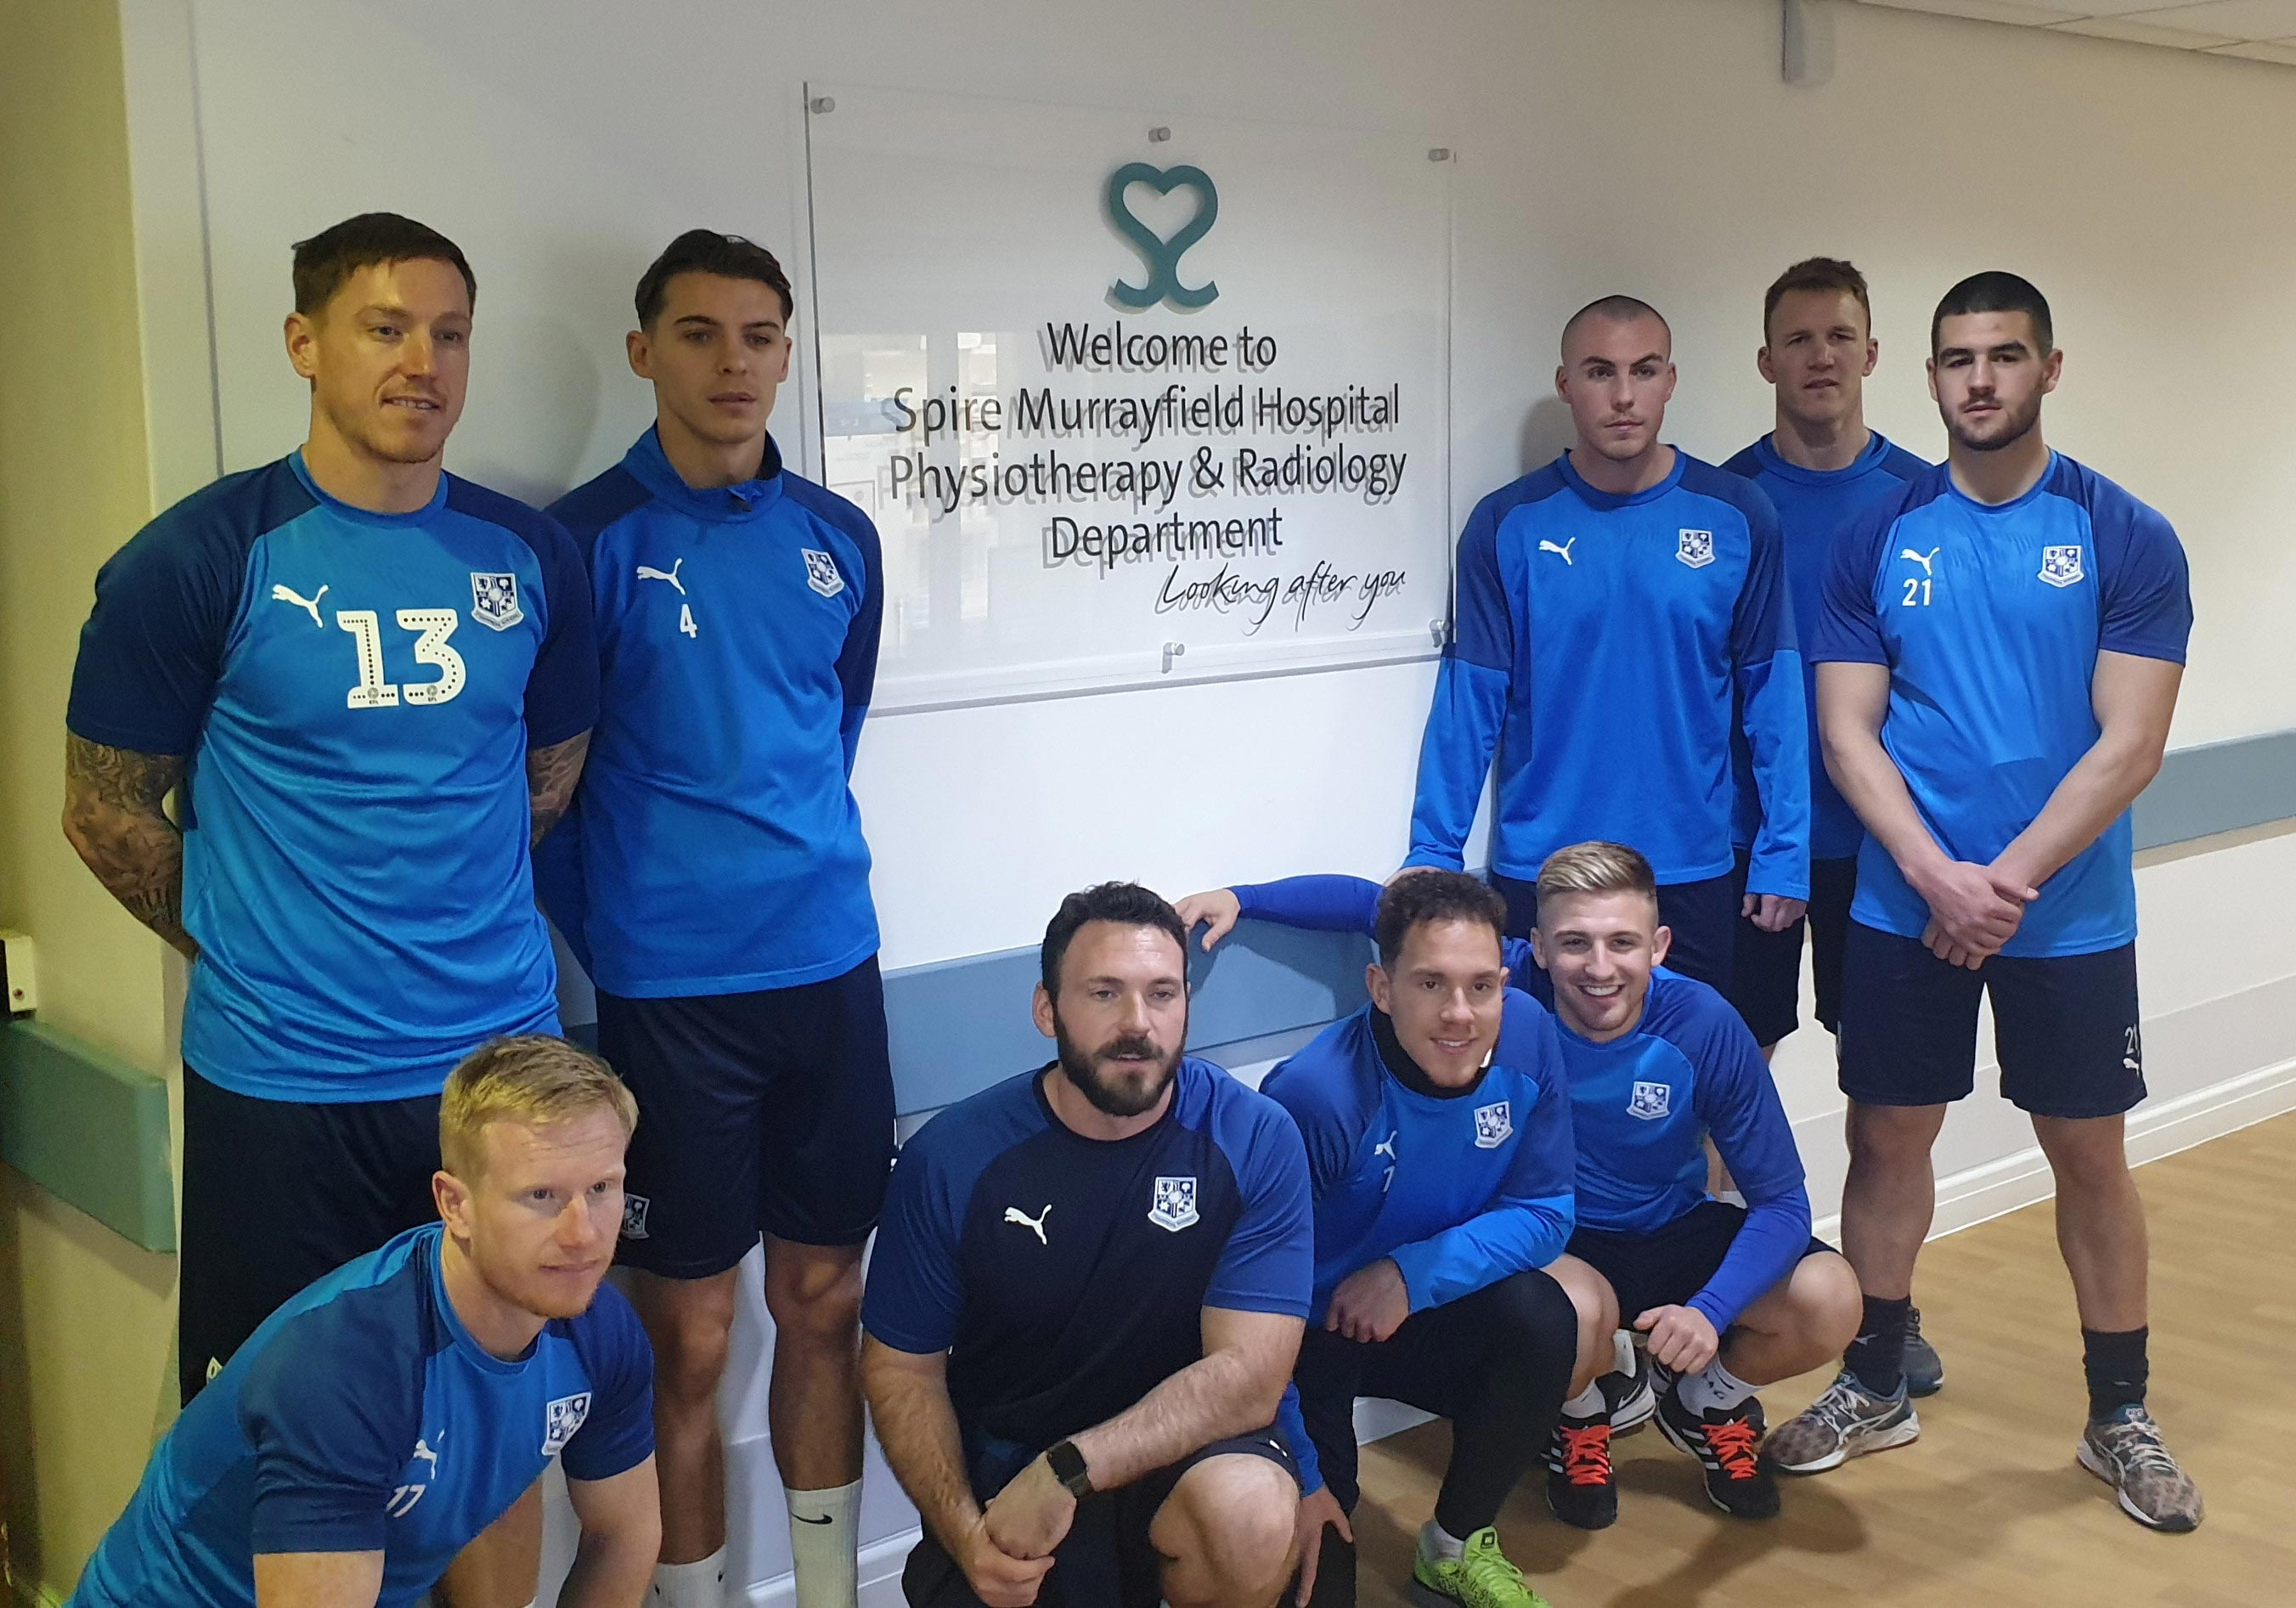 Spire Murrayfield Hospital, Wirral is now the official medical partner of Tranmere Rovers Football Club